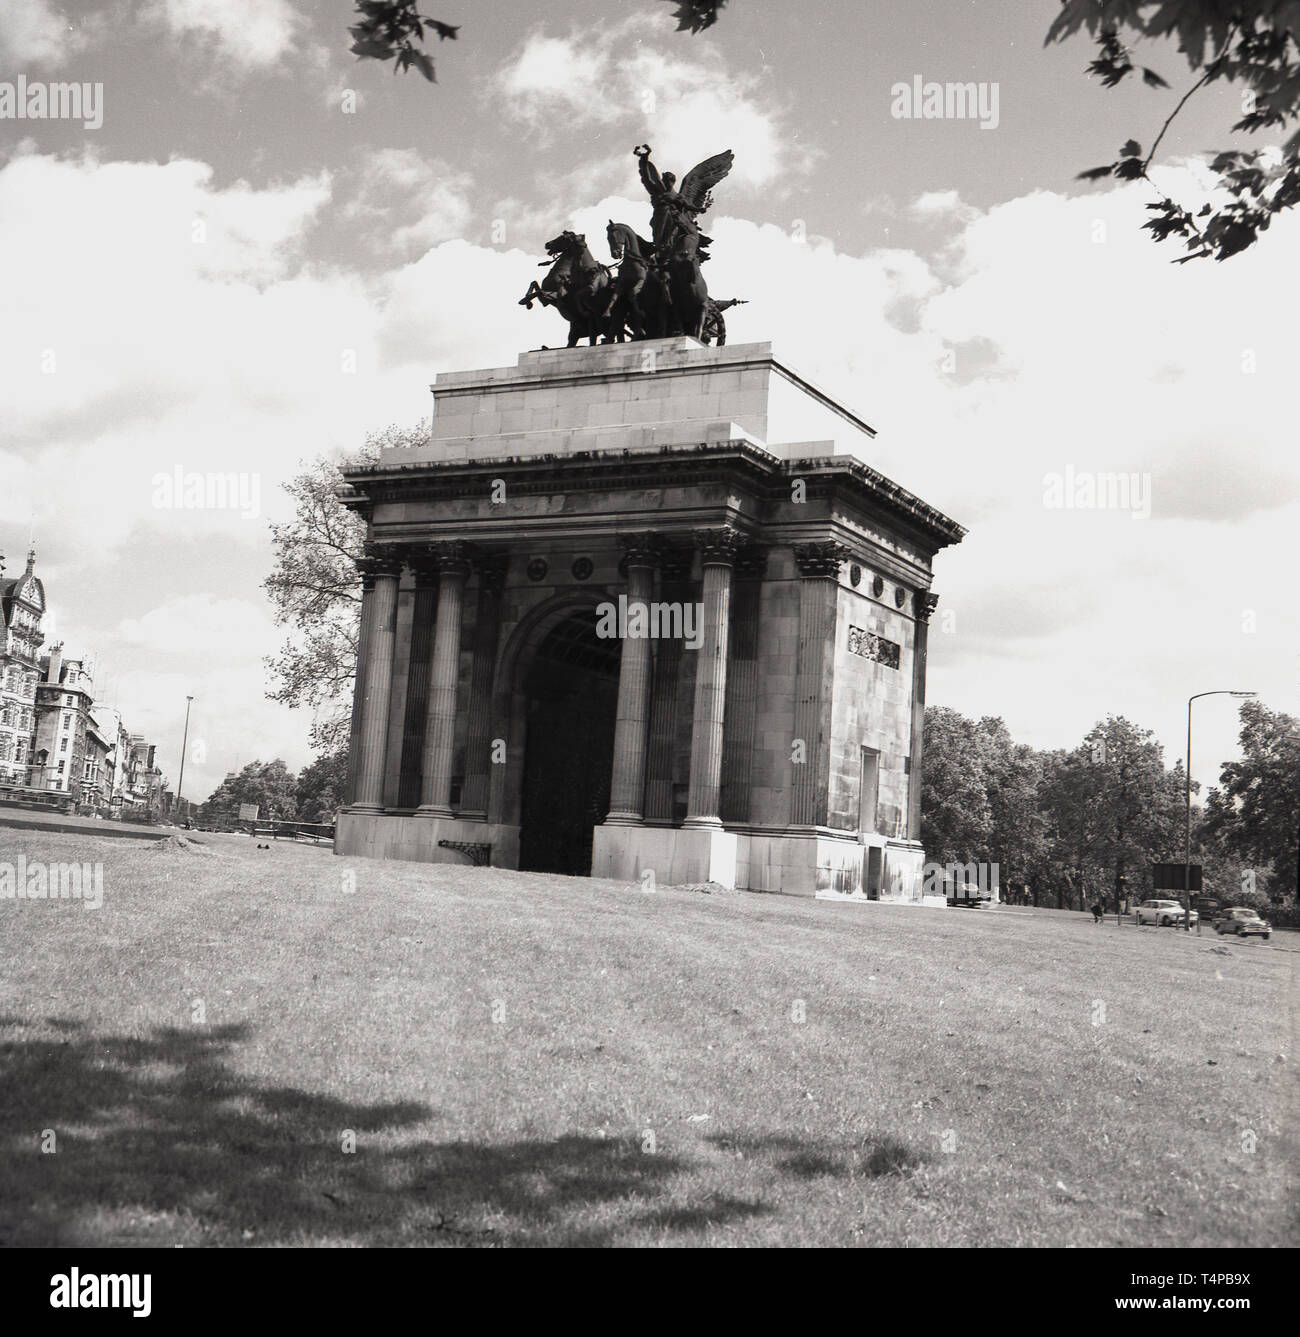 1960s, historical, View Wellington Arch, Hyde Park Corner, London, from this era. A bronze quadriga ( ancient four-horse chariot) has surmounted it since 1912. Up until 1992, it housed the smallest poice station in London. - Stock Image